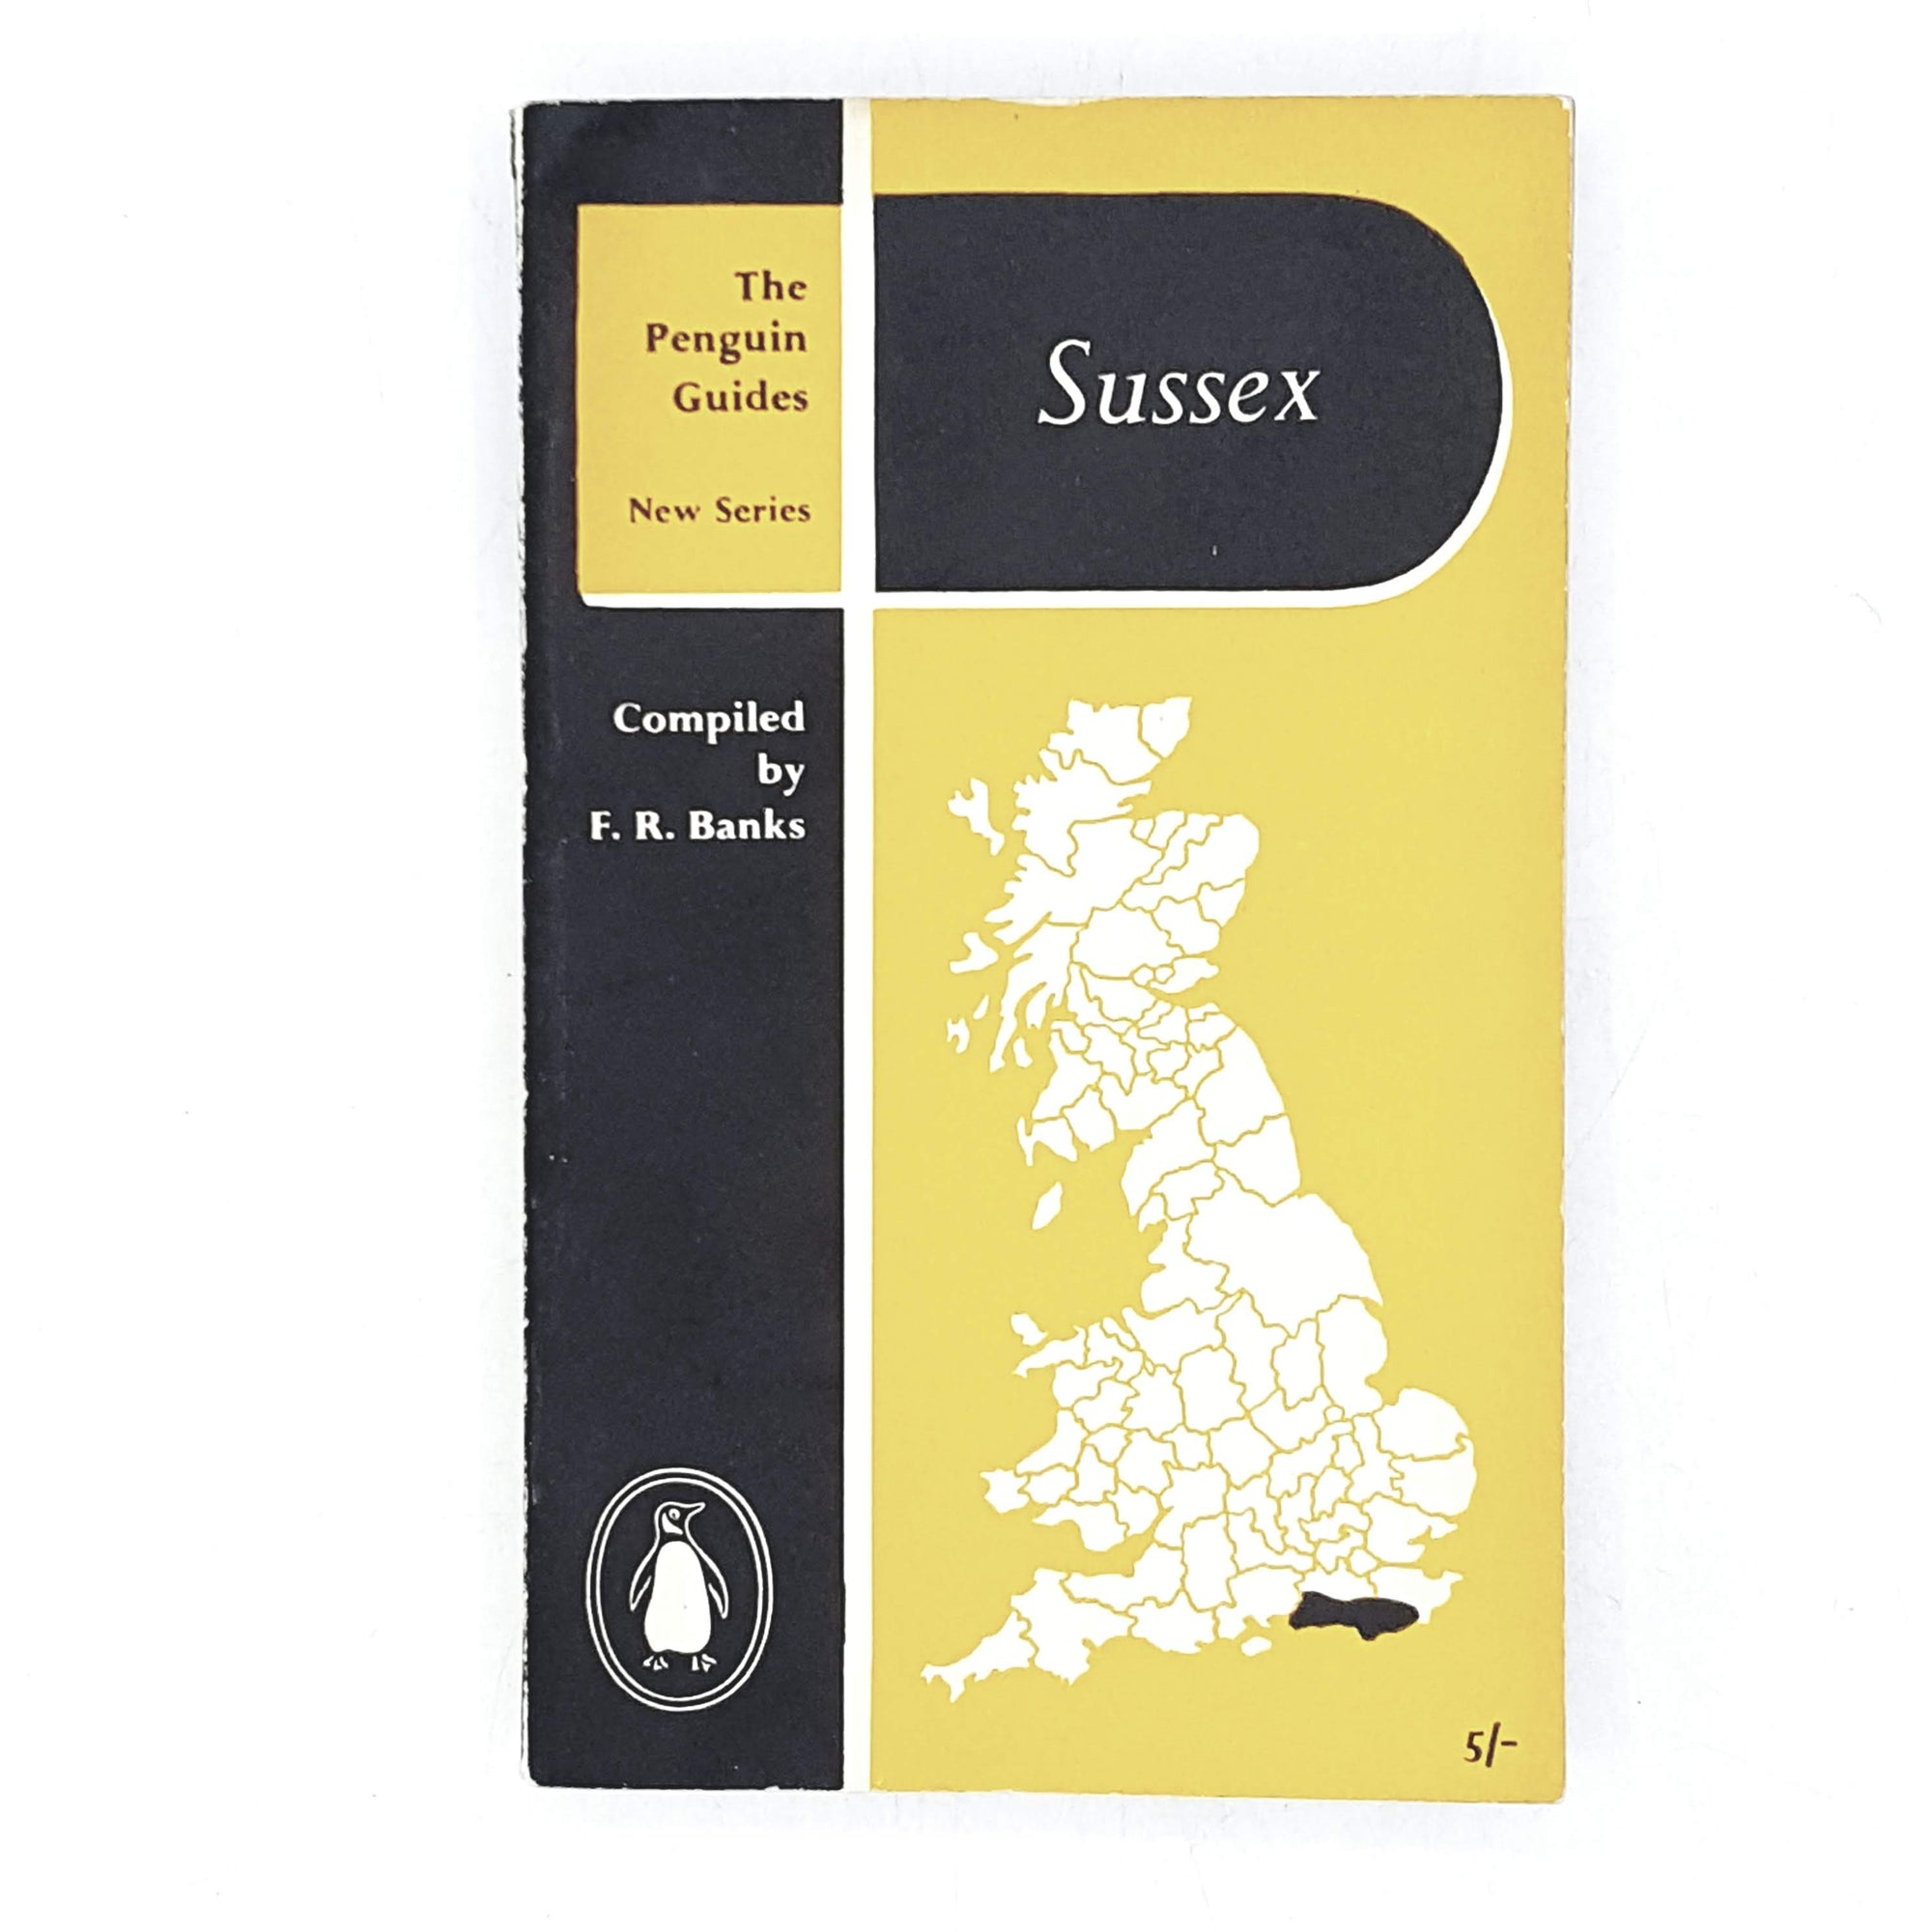 Vintage Penguin Sussex by F. R. Banks 1957